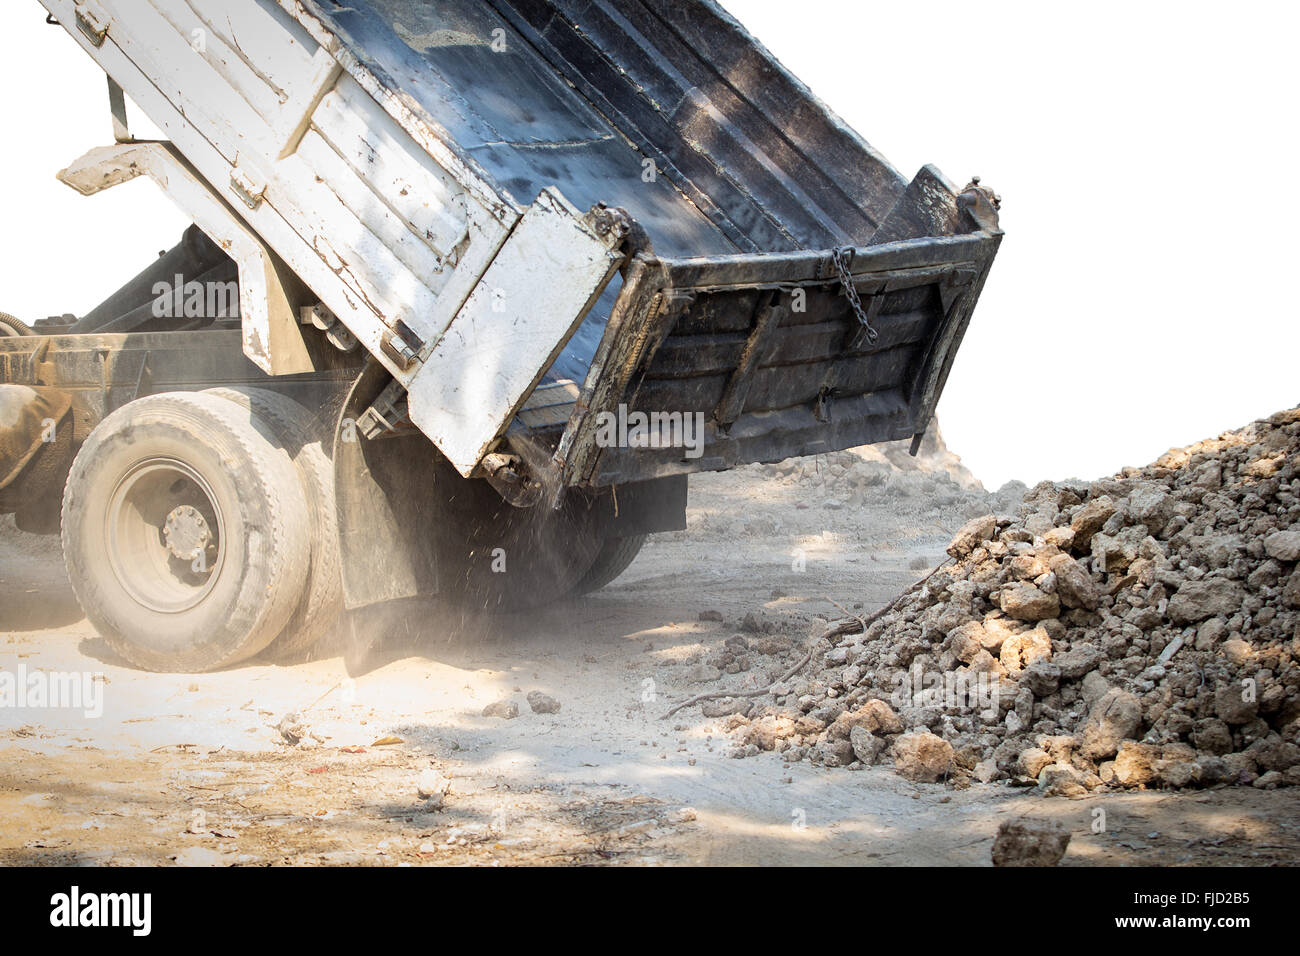 A photo of Truck land dumping a soil - Stock Image